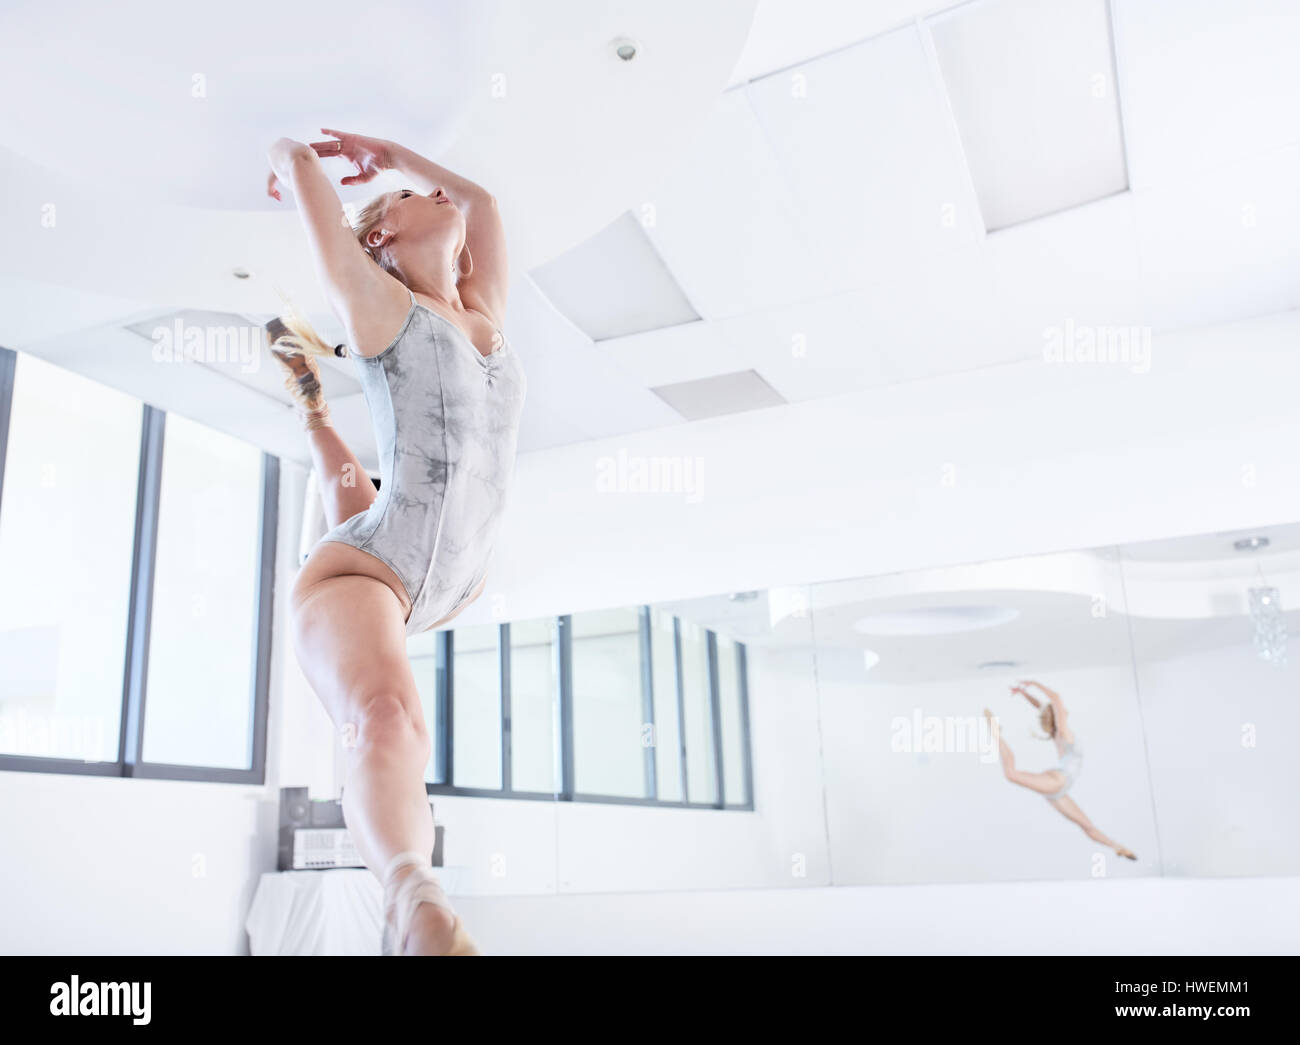 Young female ballet dancer leaping in dance studio - Stock Image